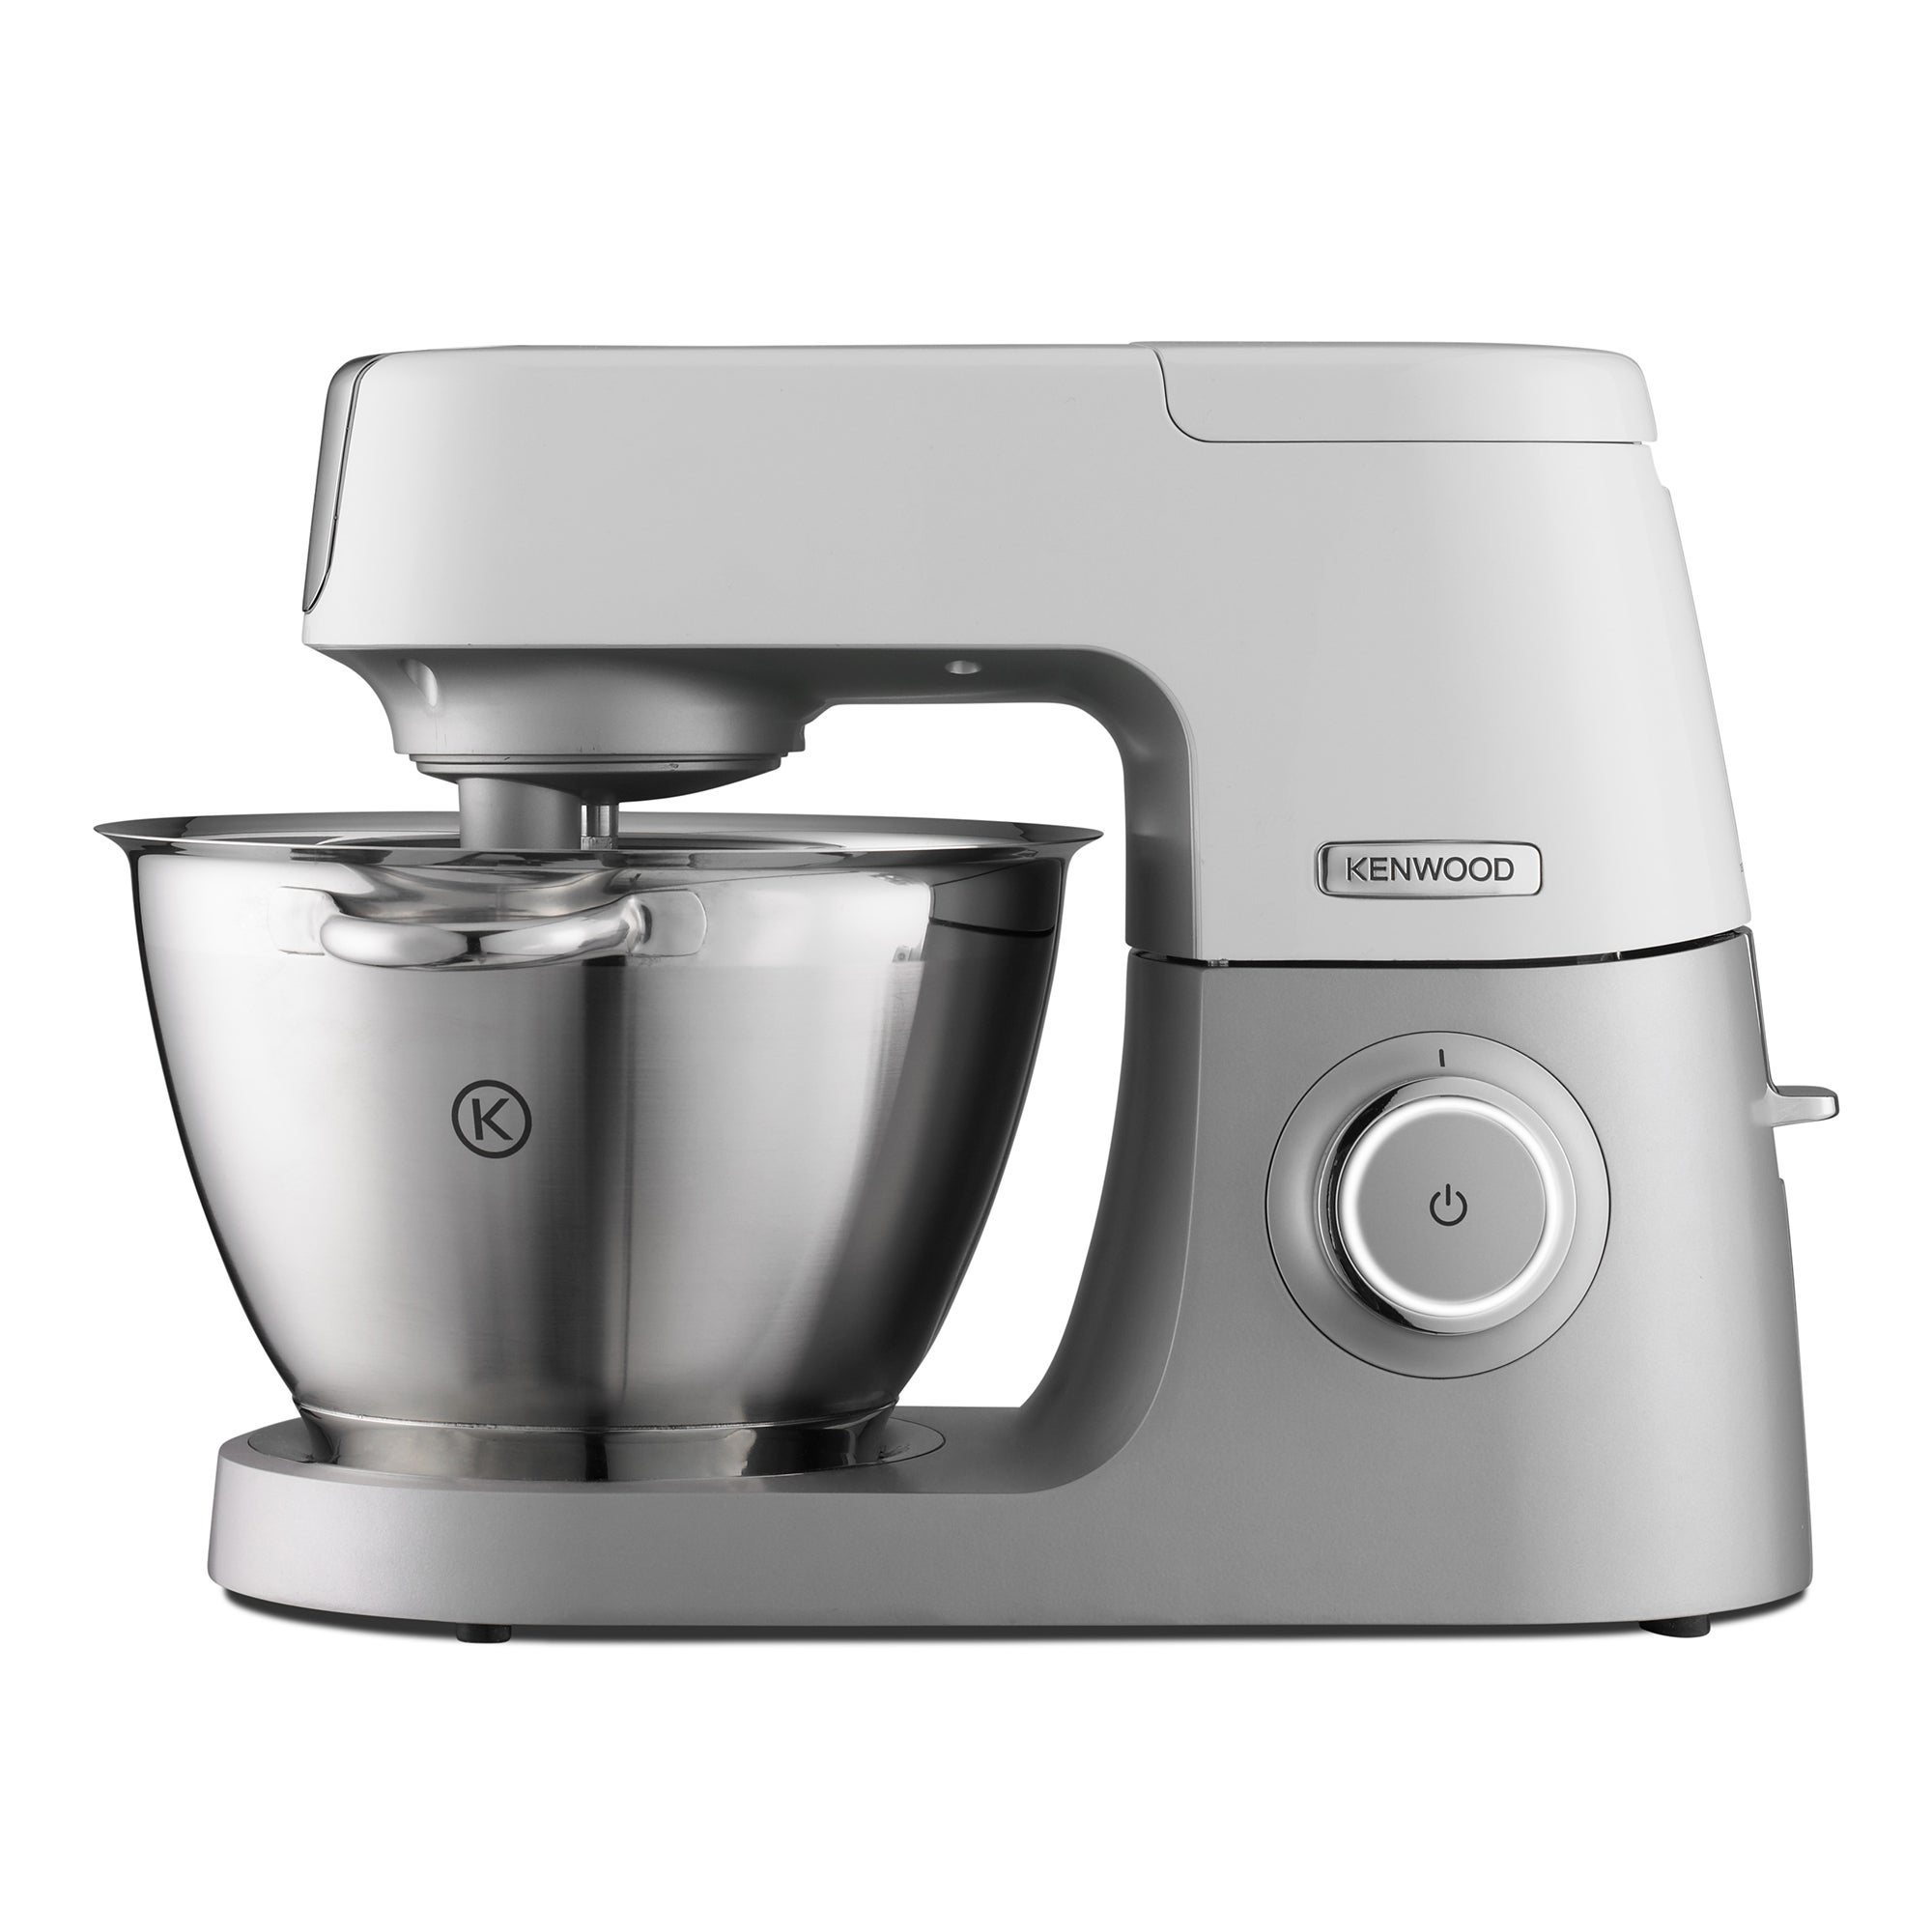 Kenwood Chef Sense Kitchen Machine Titanium KVC5000 Silver